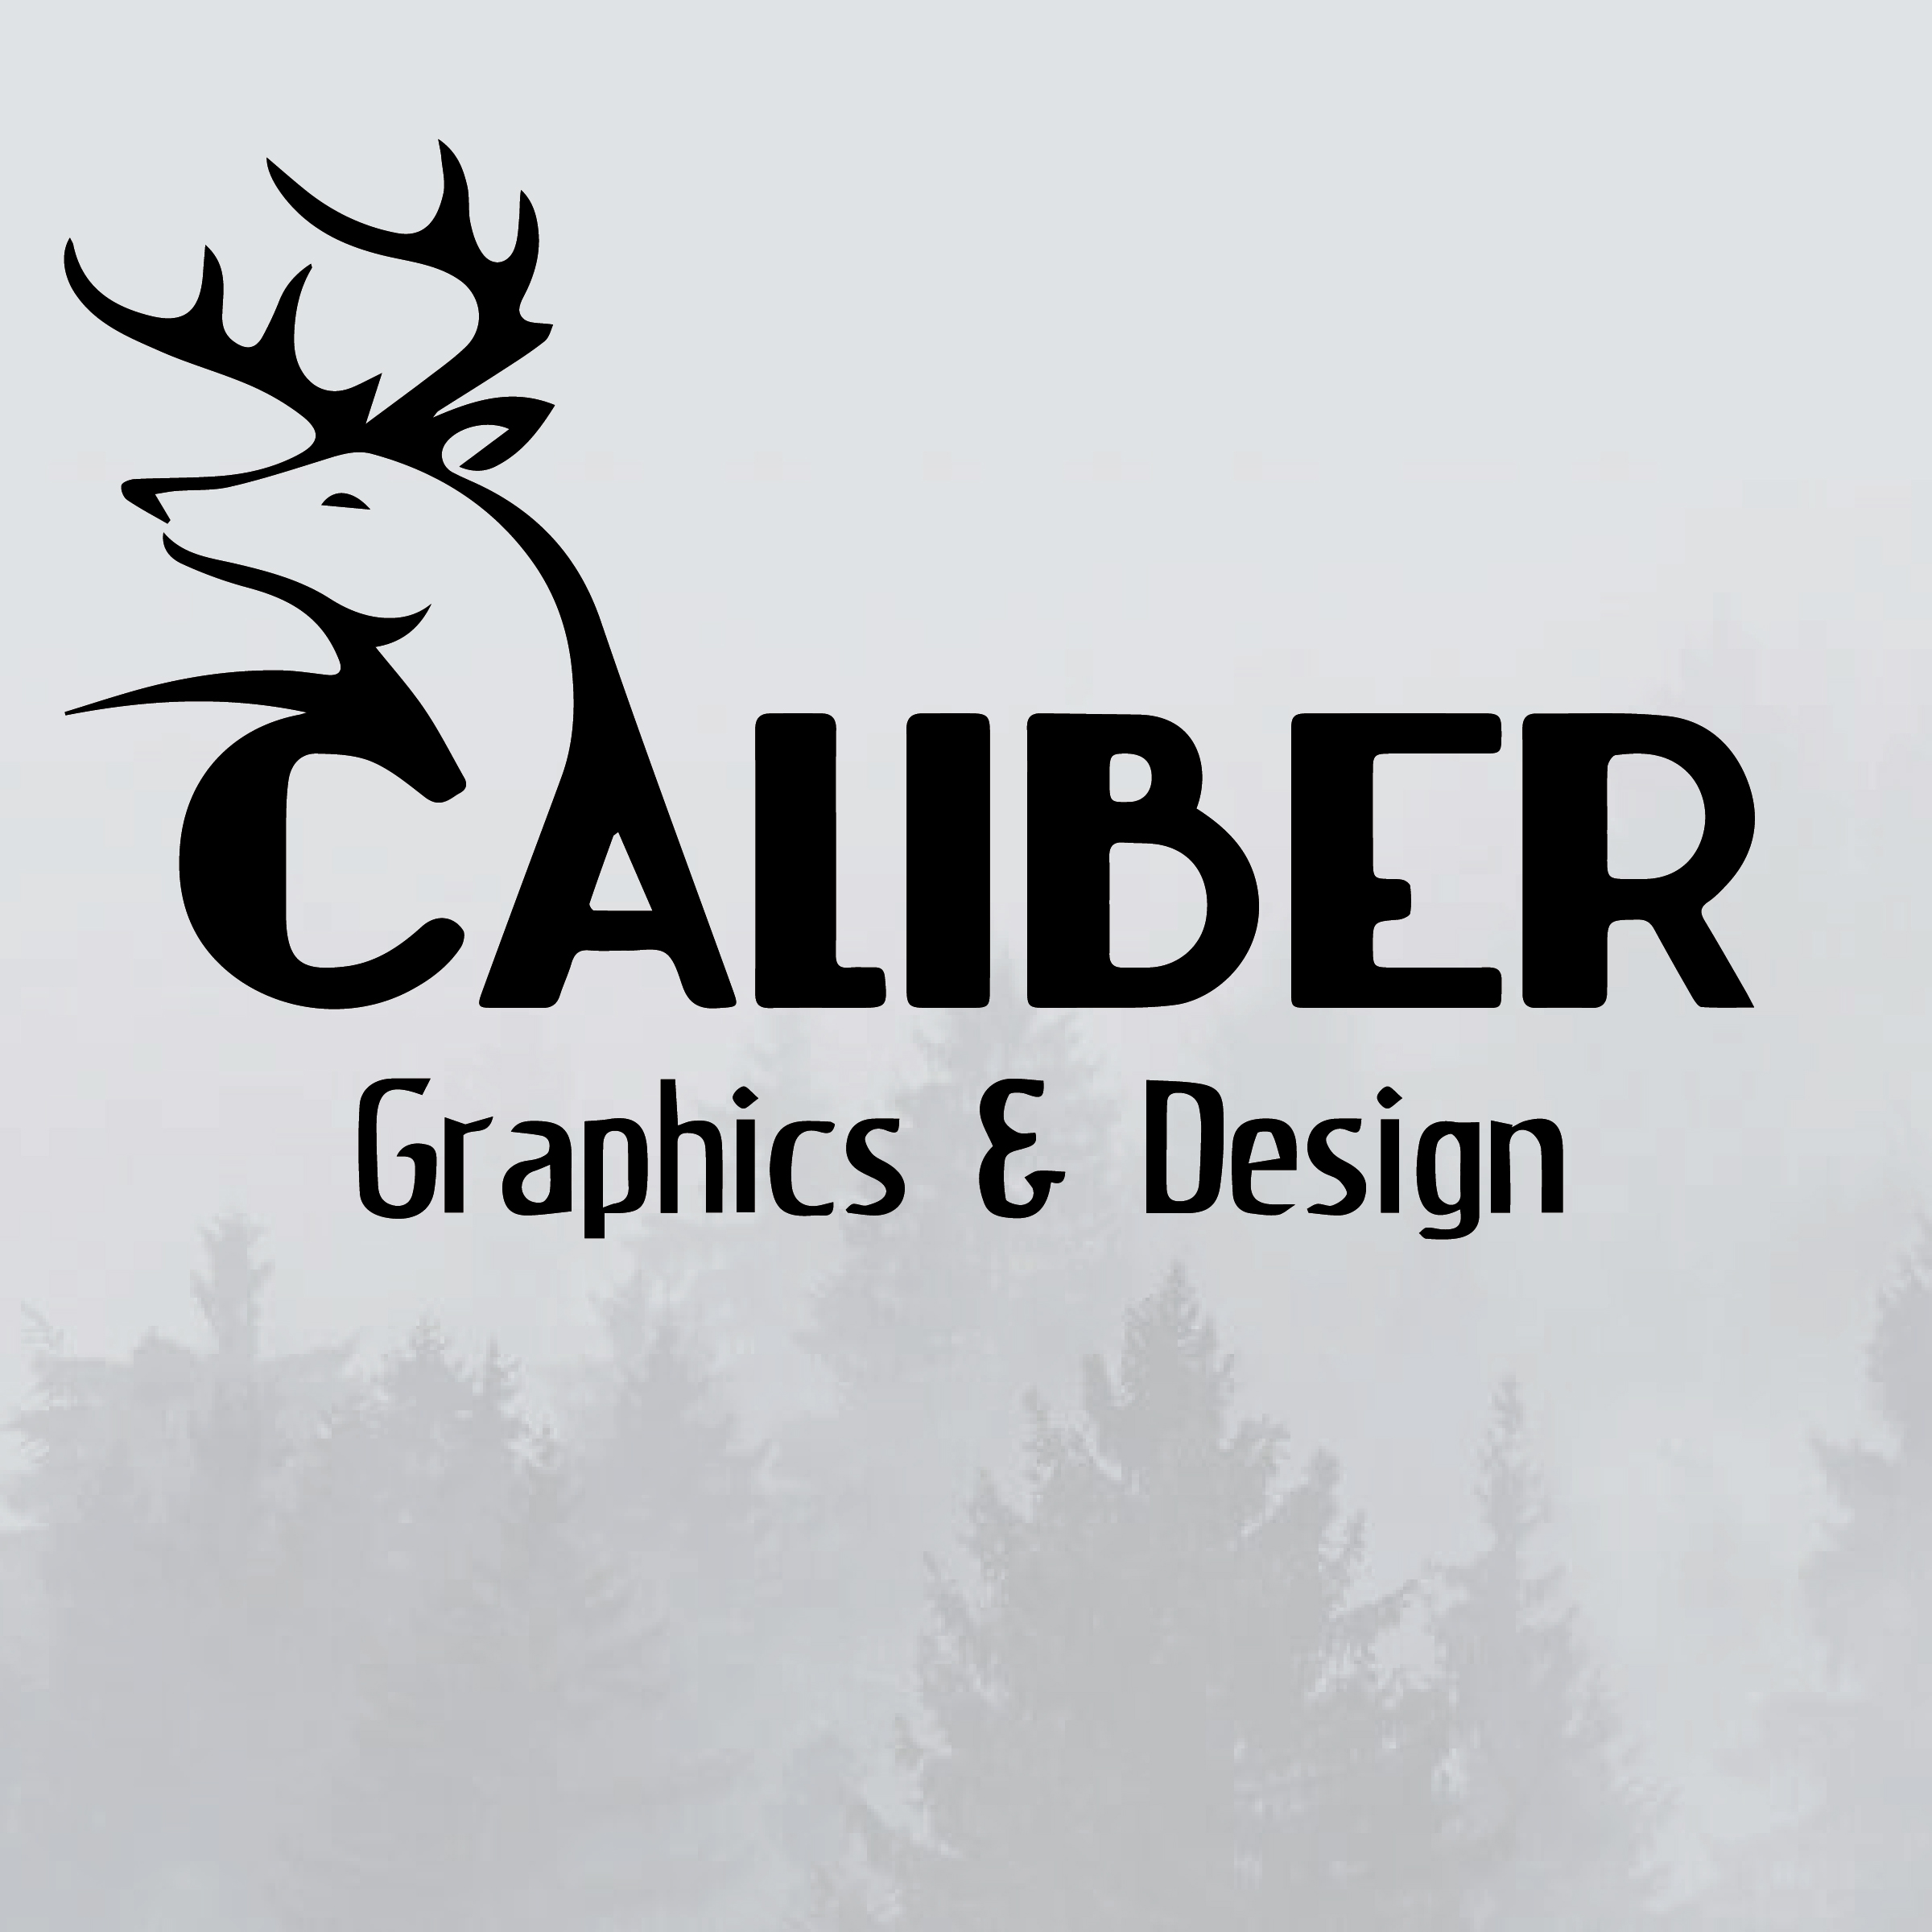 Caliber Graphics & Design LLC